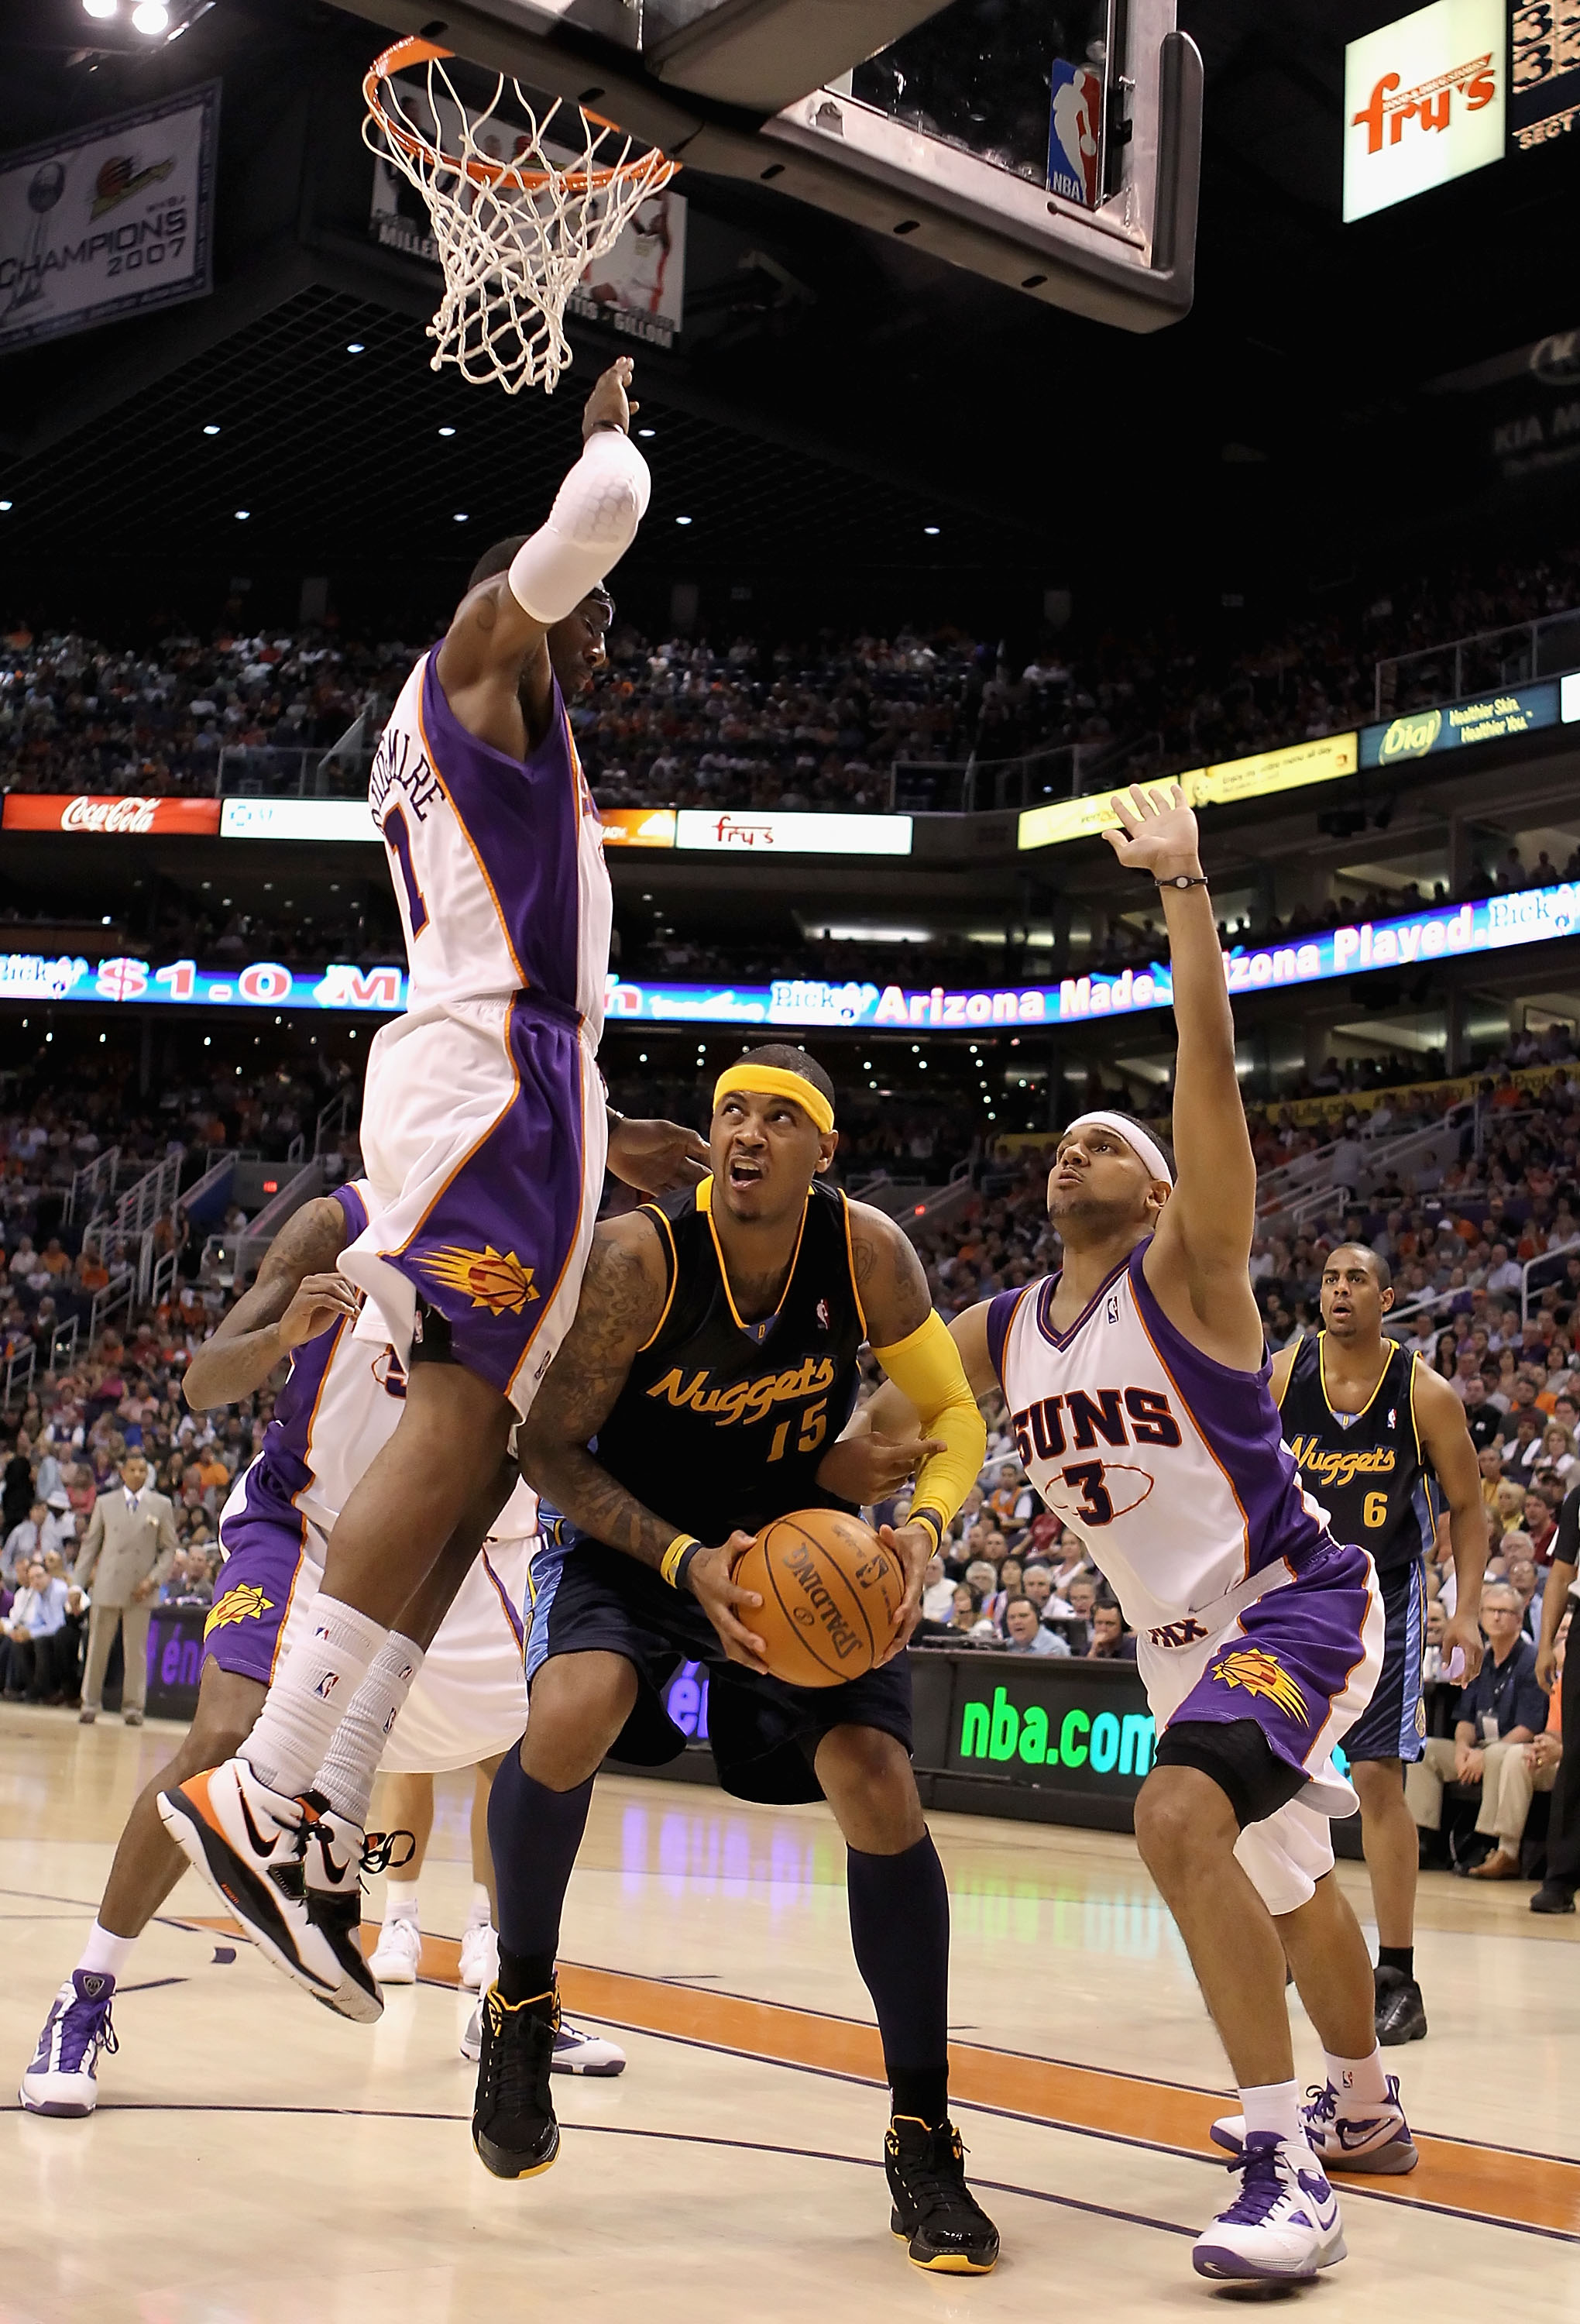 PHOENIX - APRIL 13:  Carmelo Anthony #15 of the Denver Nuggets handles the ball under pressure from Amar'e Stoudemire #1 and Jared Dudley #3 of the Phoenix Suns during the NBA game at US Airways Center on April 13, 2010 in Phoenix, Arizona. NOTE TO USER: